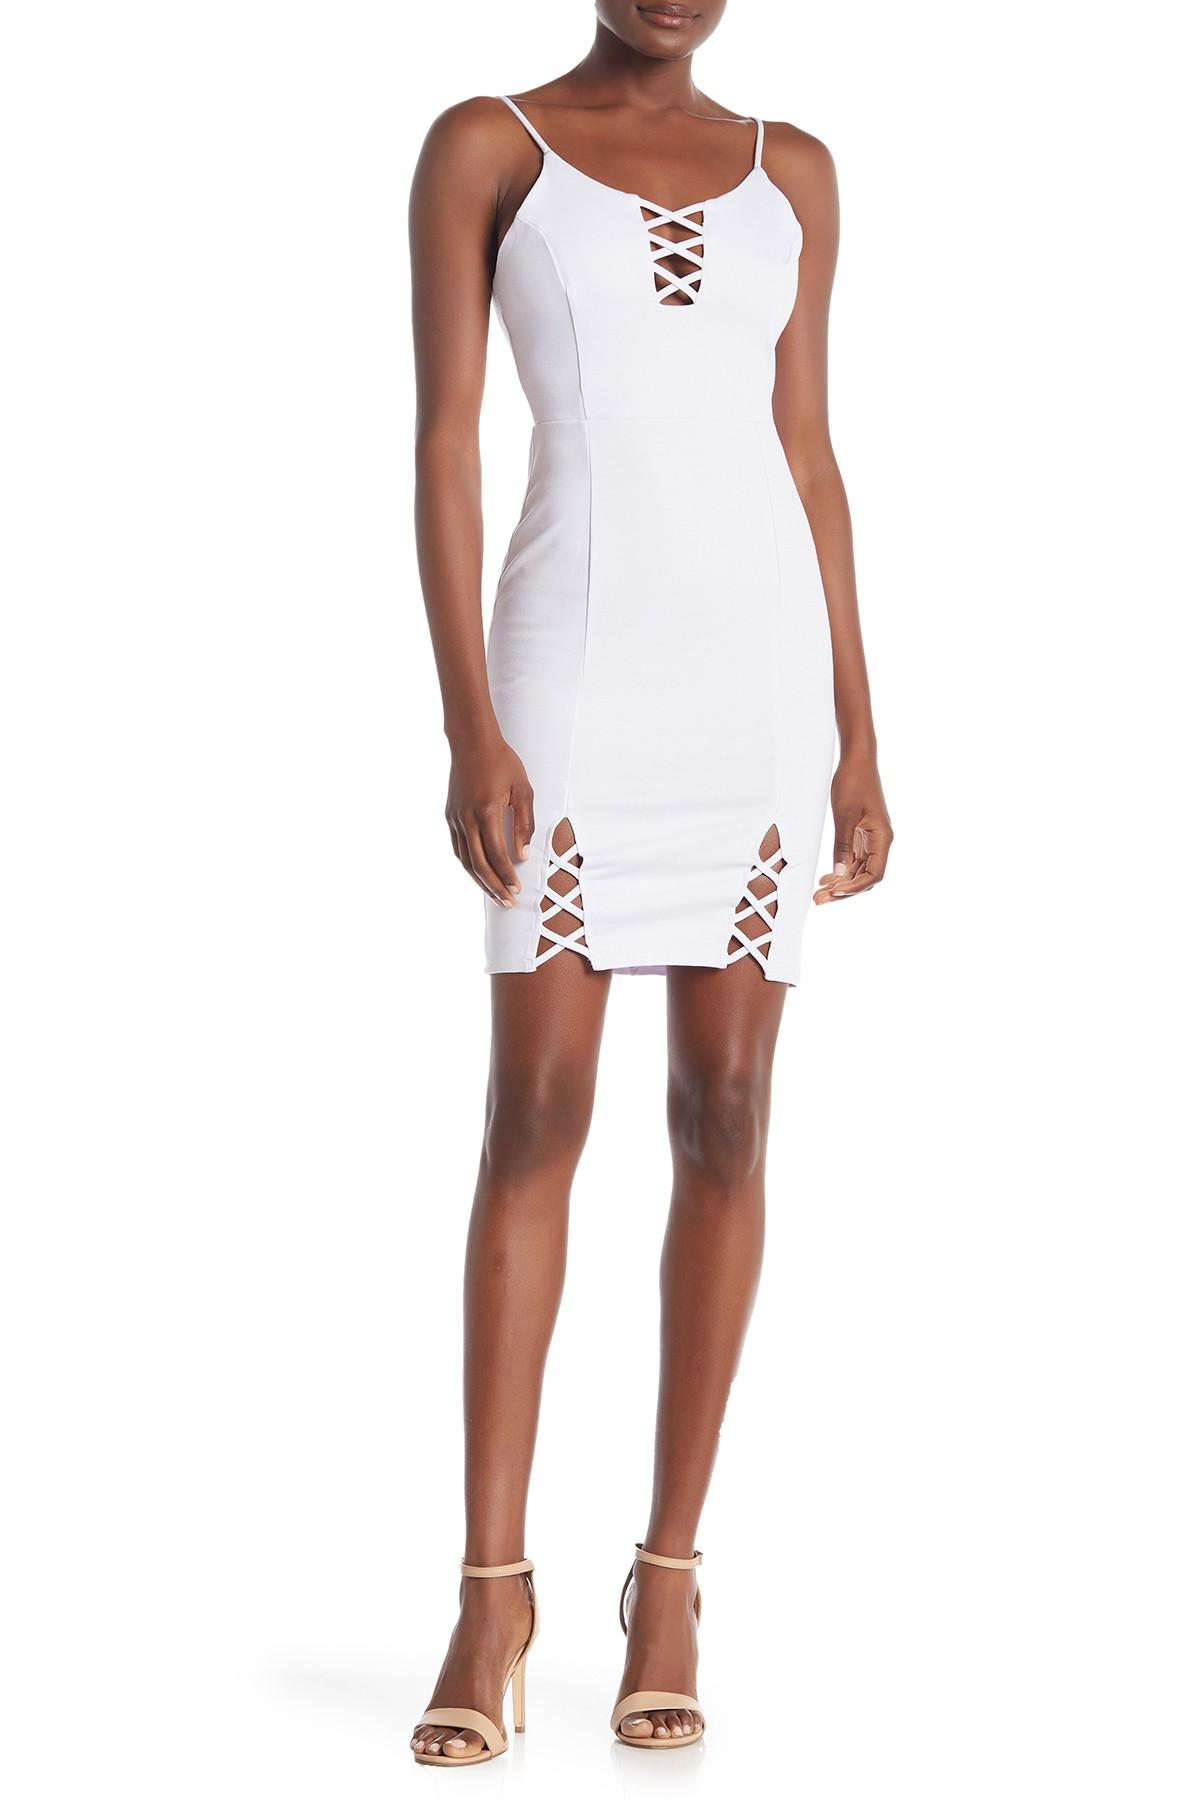 85234d48fef8 Lyst - 4si3nna Bodycon Lace-up Dress in White